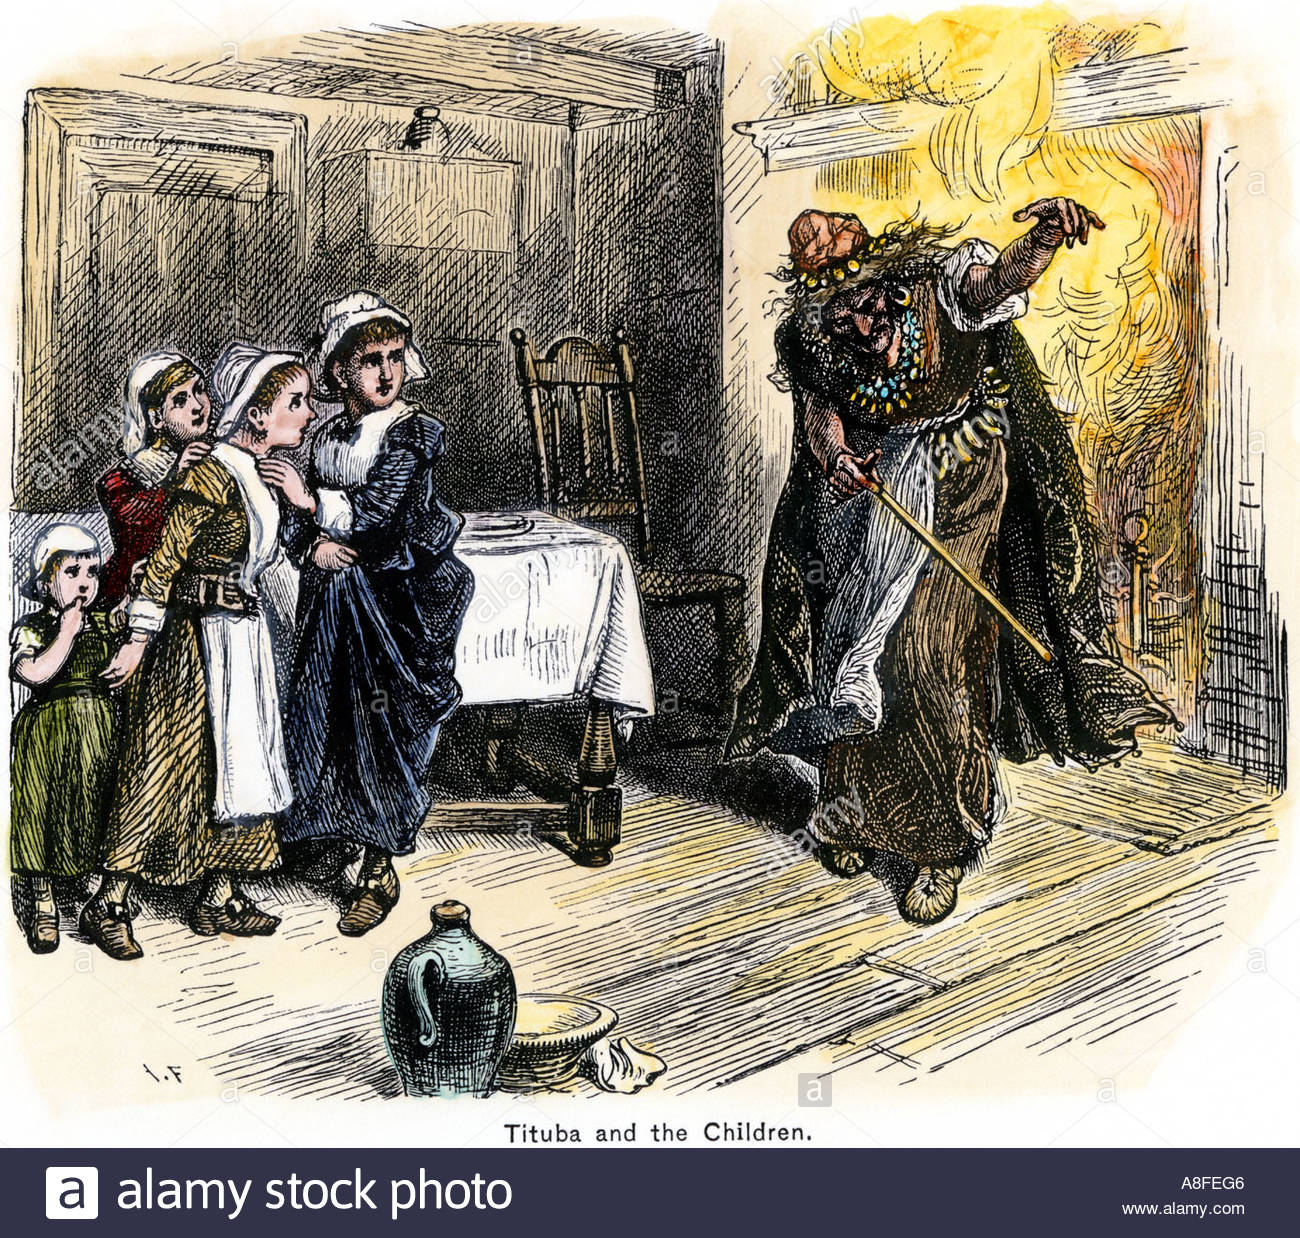 Salem Witches Stock Photos & Salem Witches Stock Images.